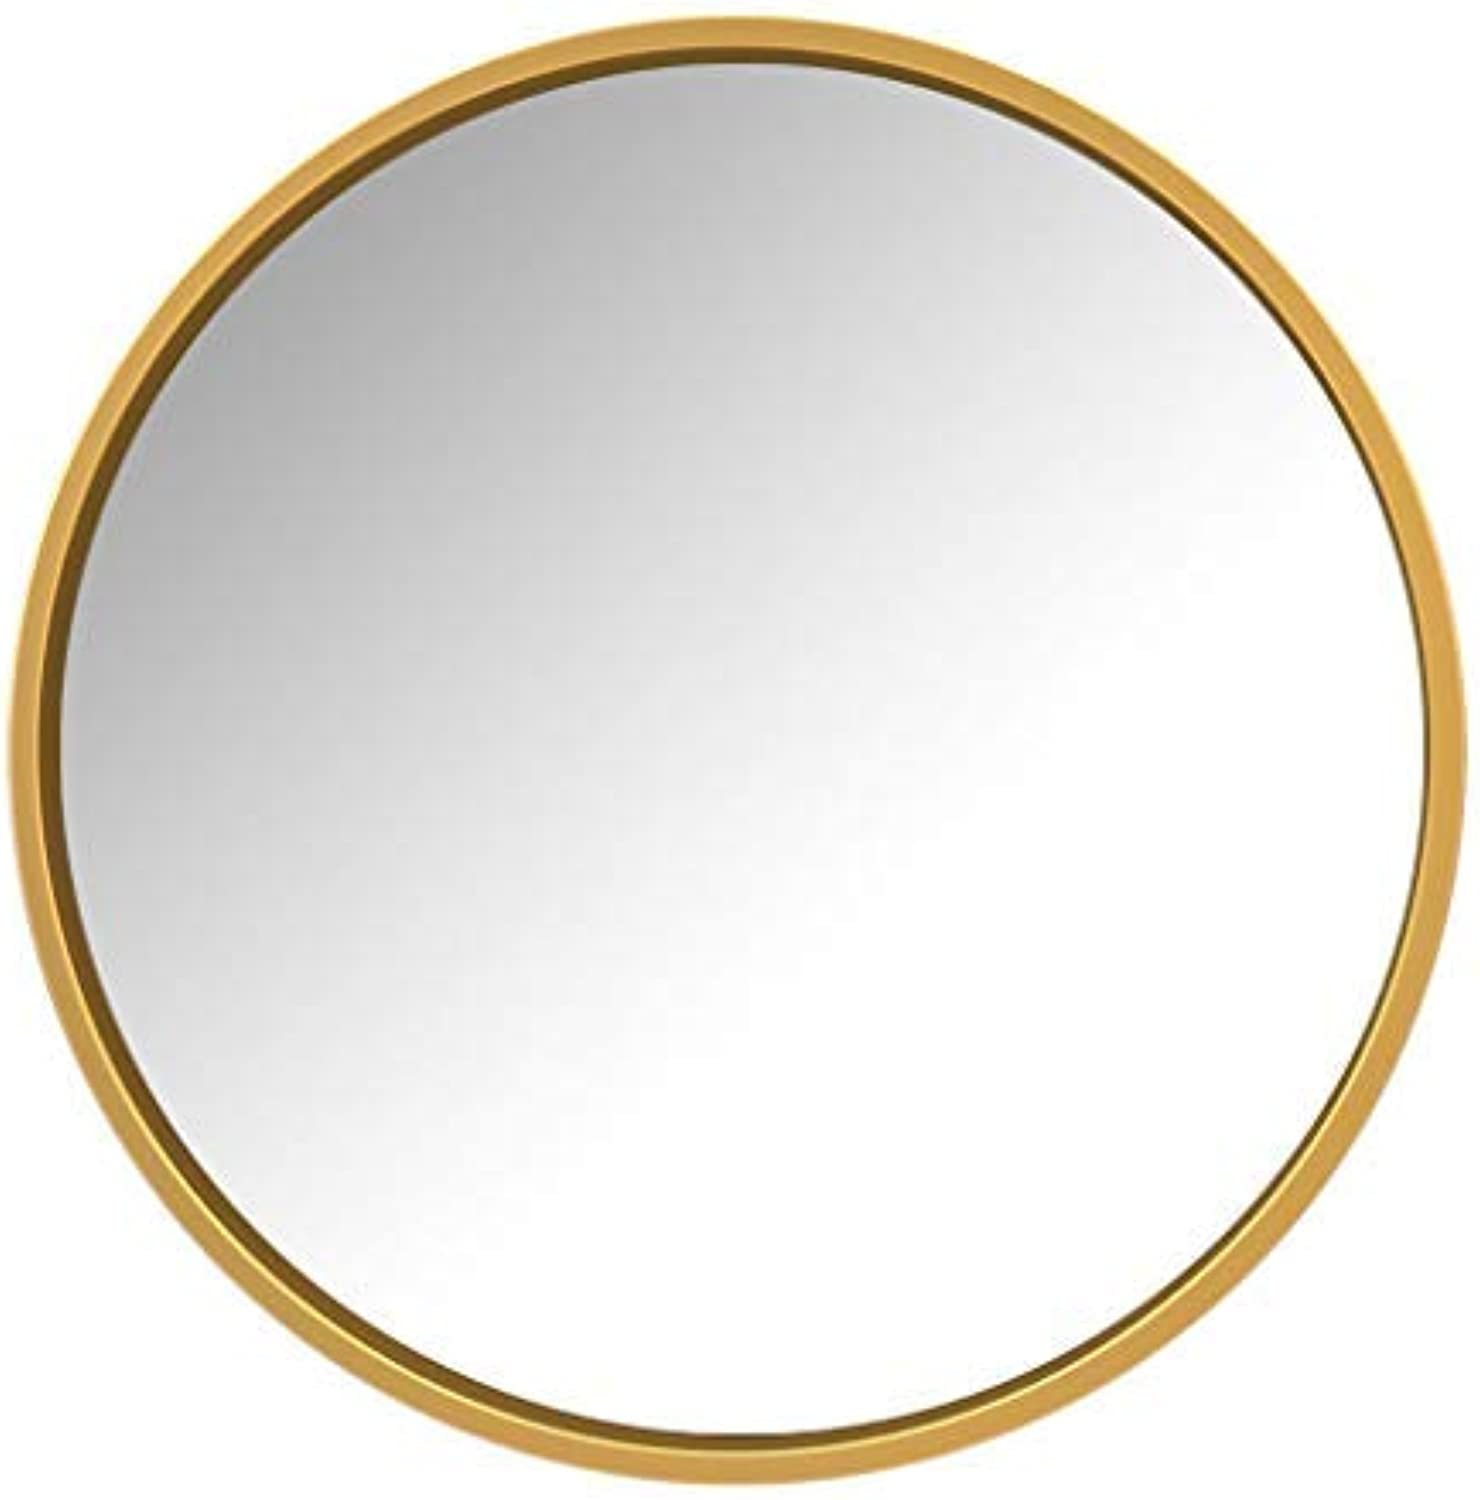 ZHAS Round Wall-Mounted Bathroom Mirror   Makeup Shaving Mirror   gold Metal Frame Wall Mirror   40-70cm Available